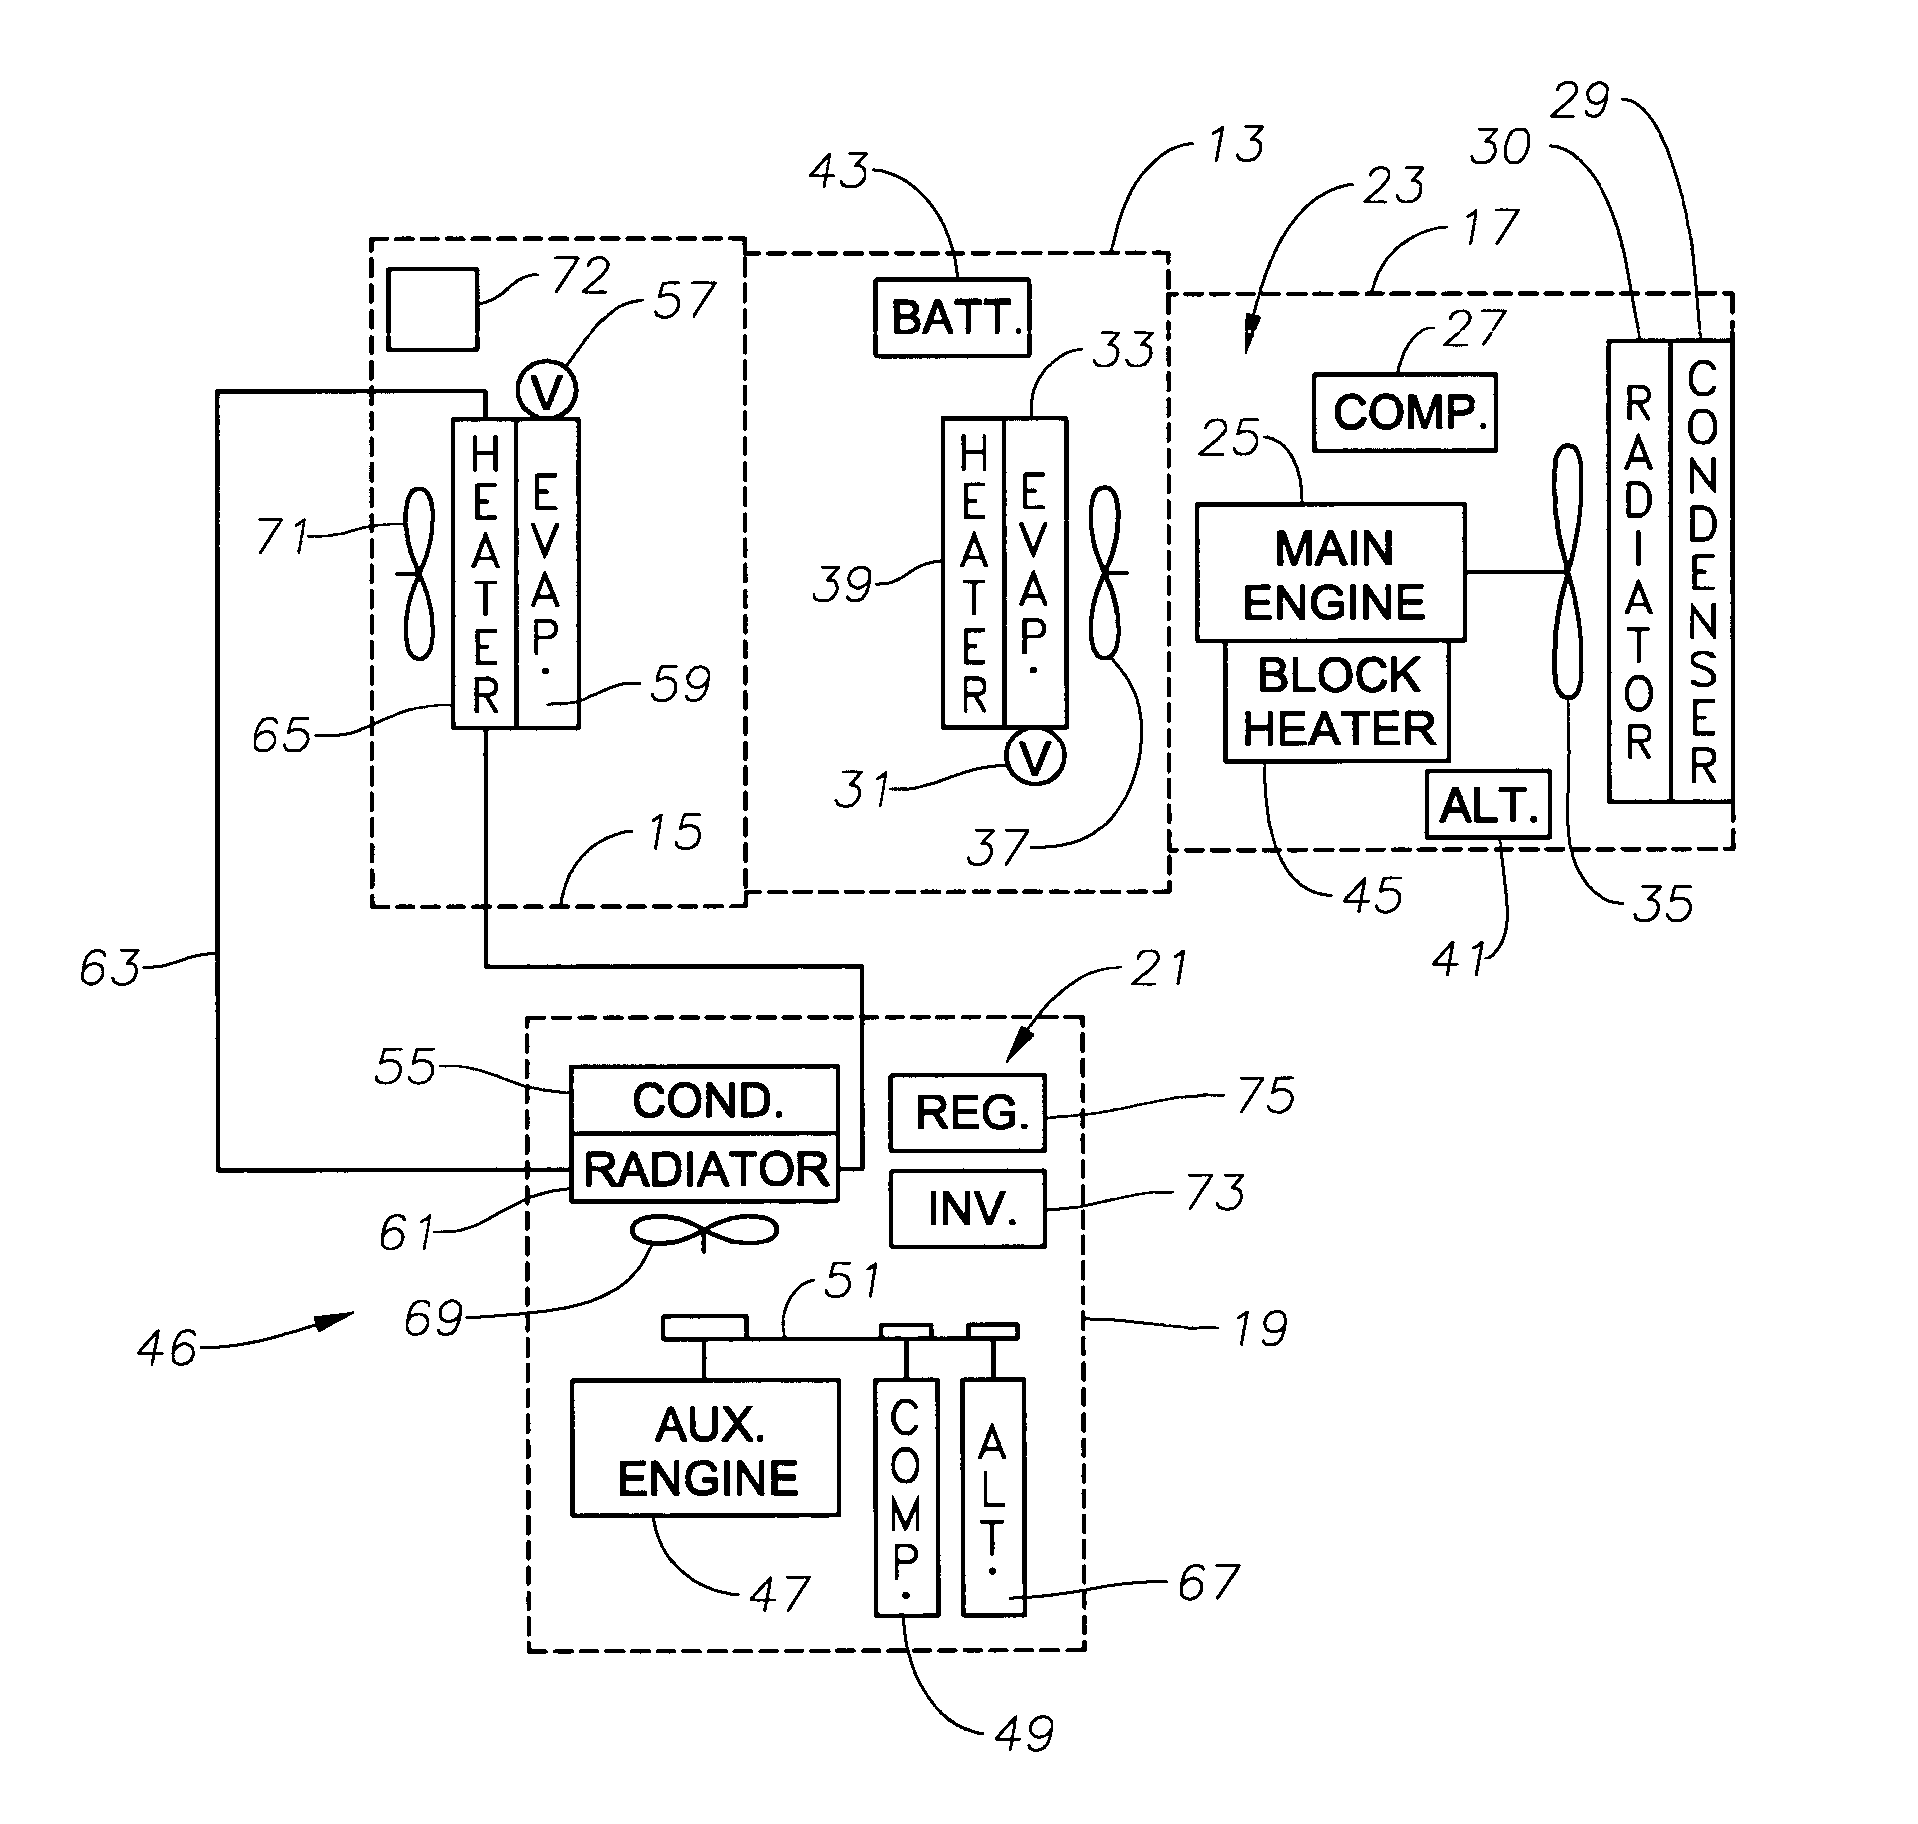 US07259469 20070821 D00000 patent us7259469 vehicle auxiliary power unit, assembly, and scs frigette cruise control wiring diagram at n-0.co